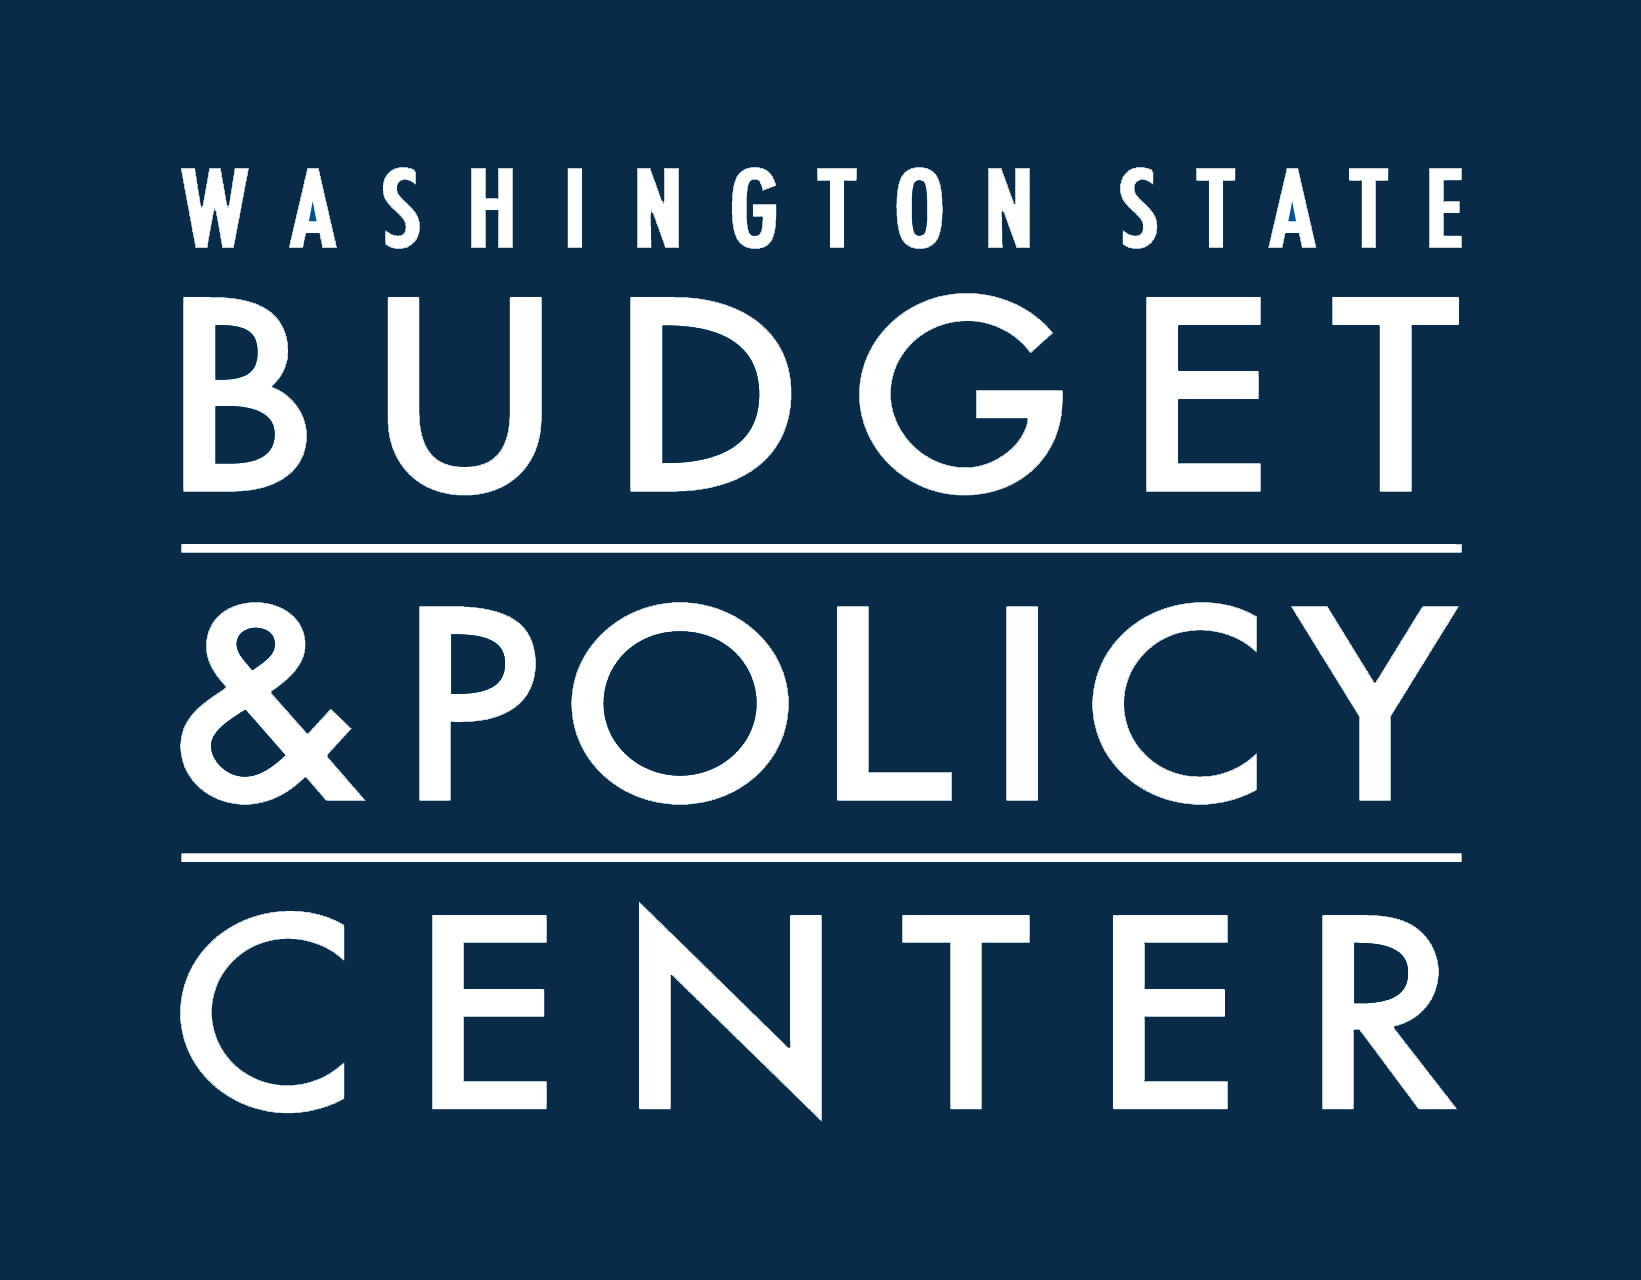 Washington State Budget and Policy Center logo